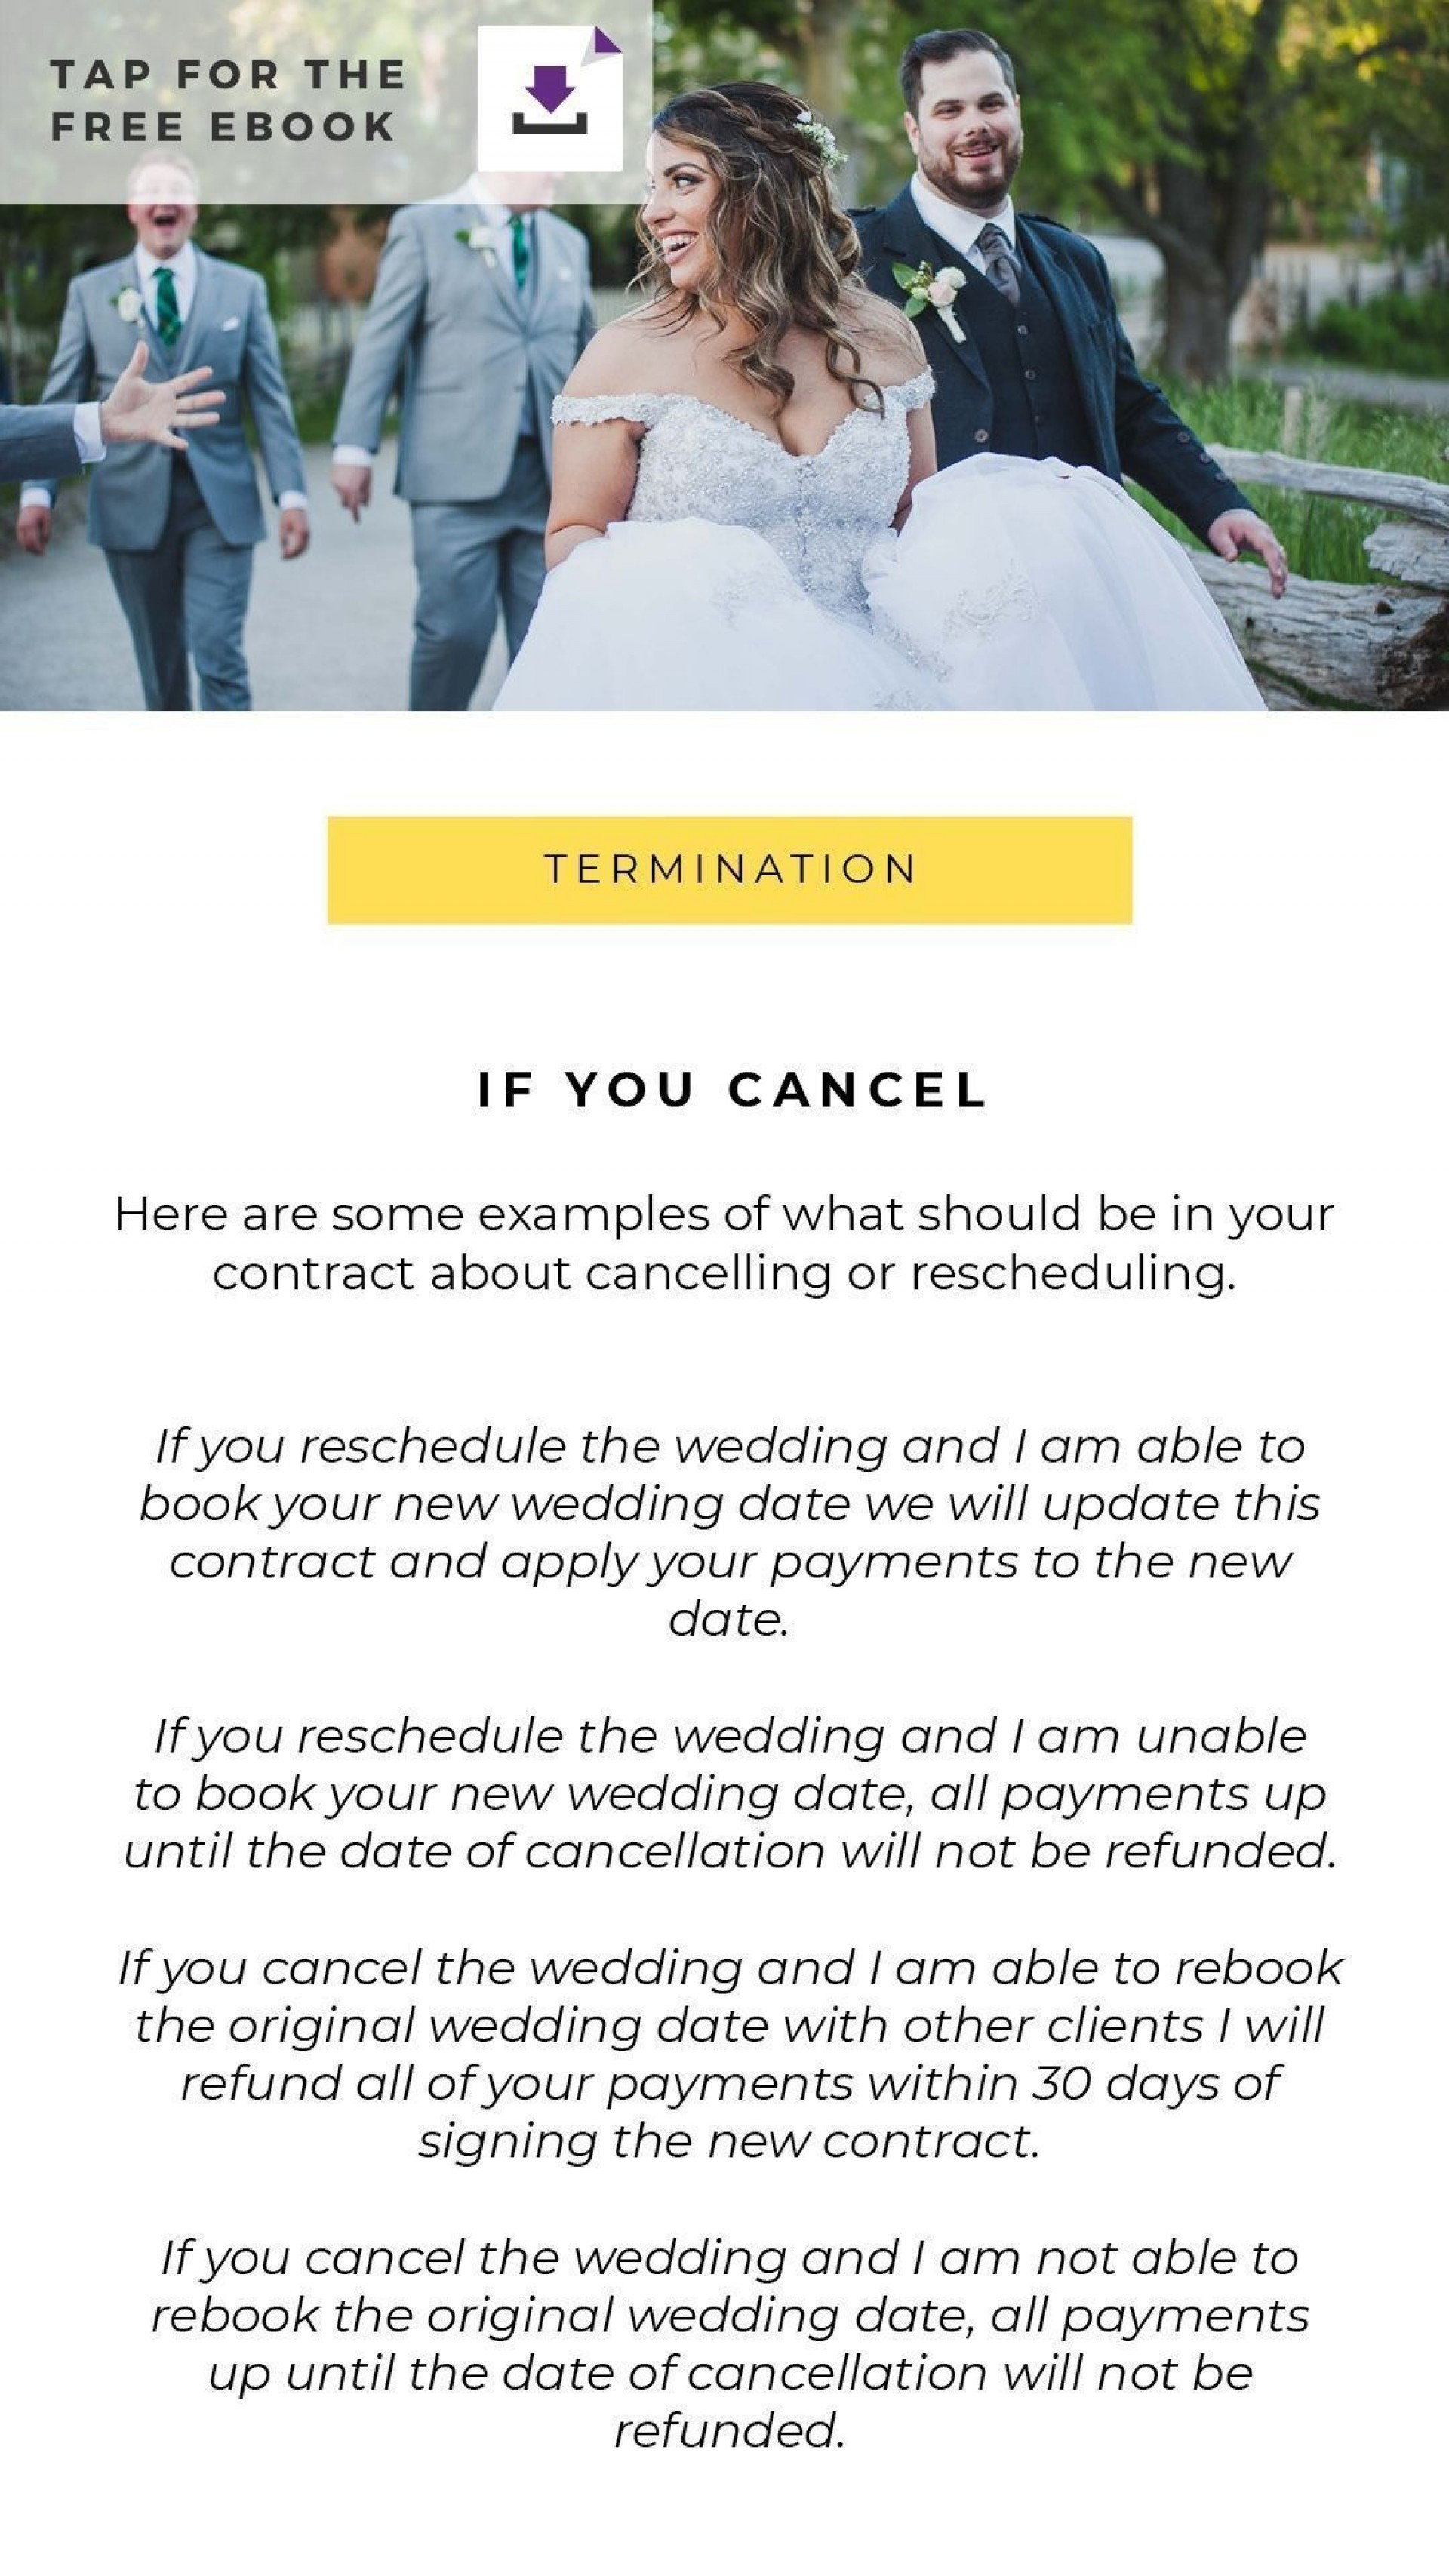 001 Outstanding Wedding Photography Contract Template Canada Idea 1920